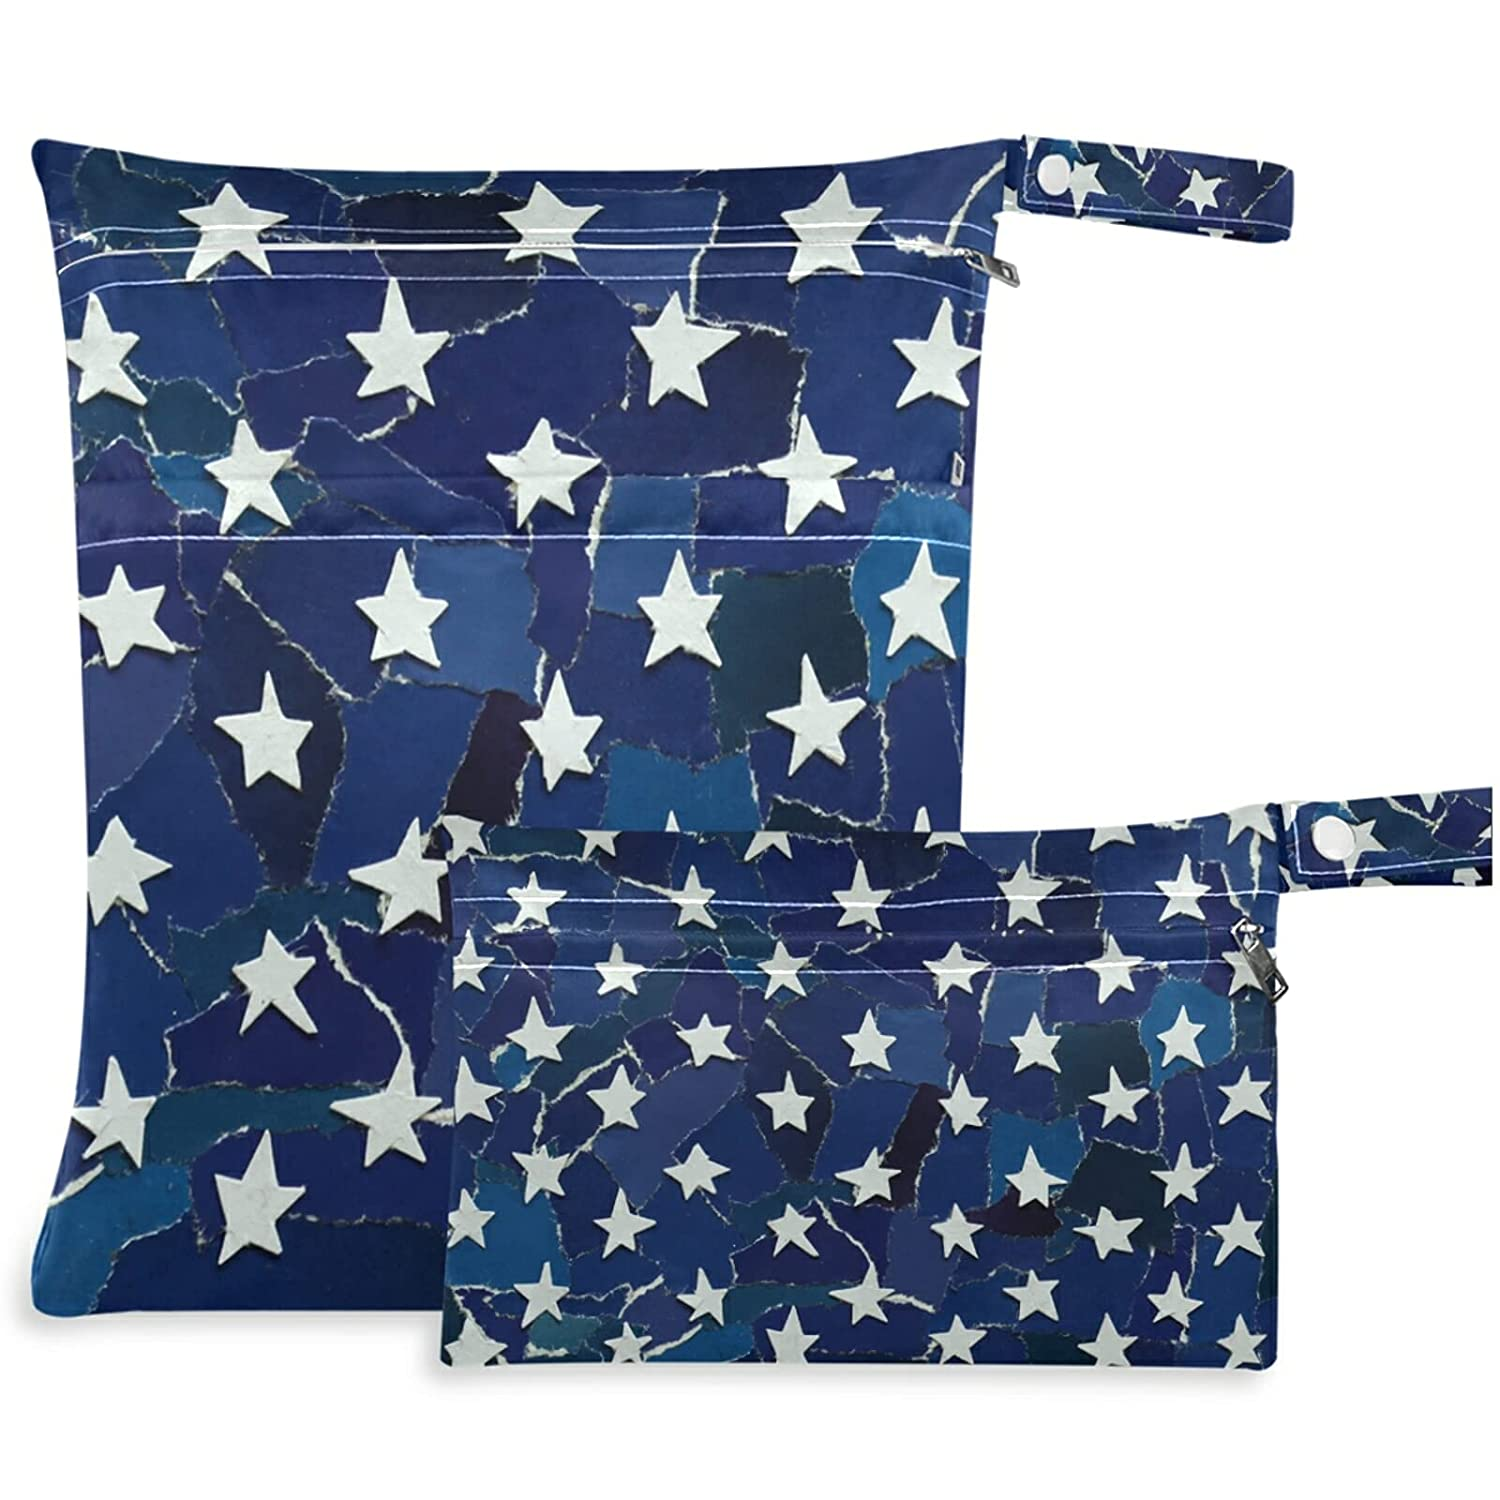 visesunny Abstract American Star All stores are sold 2Pcs Bag Deluxe Zippered Wet with Pock